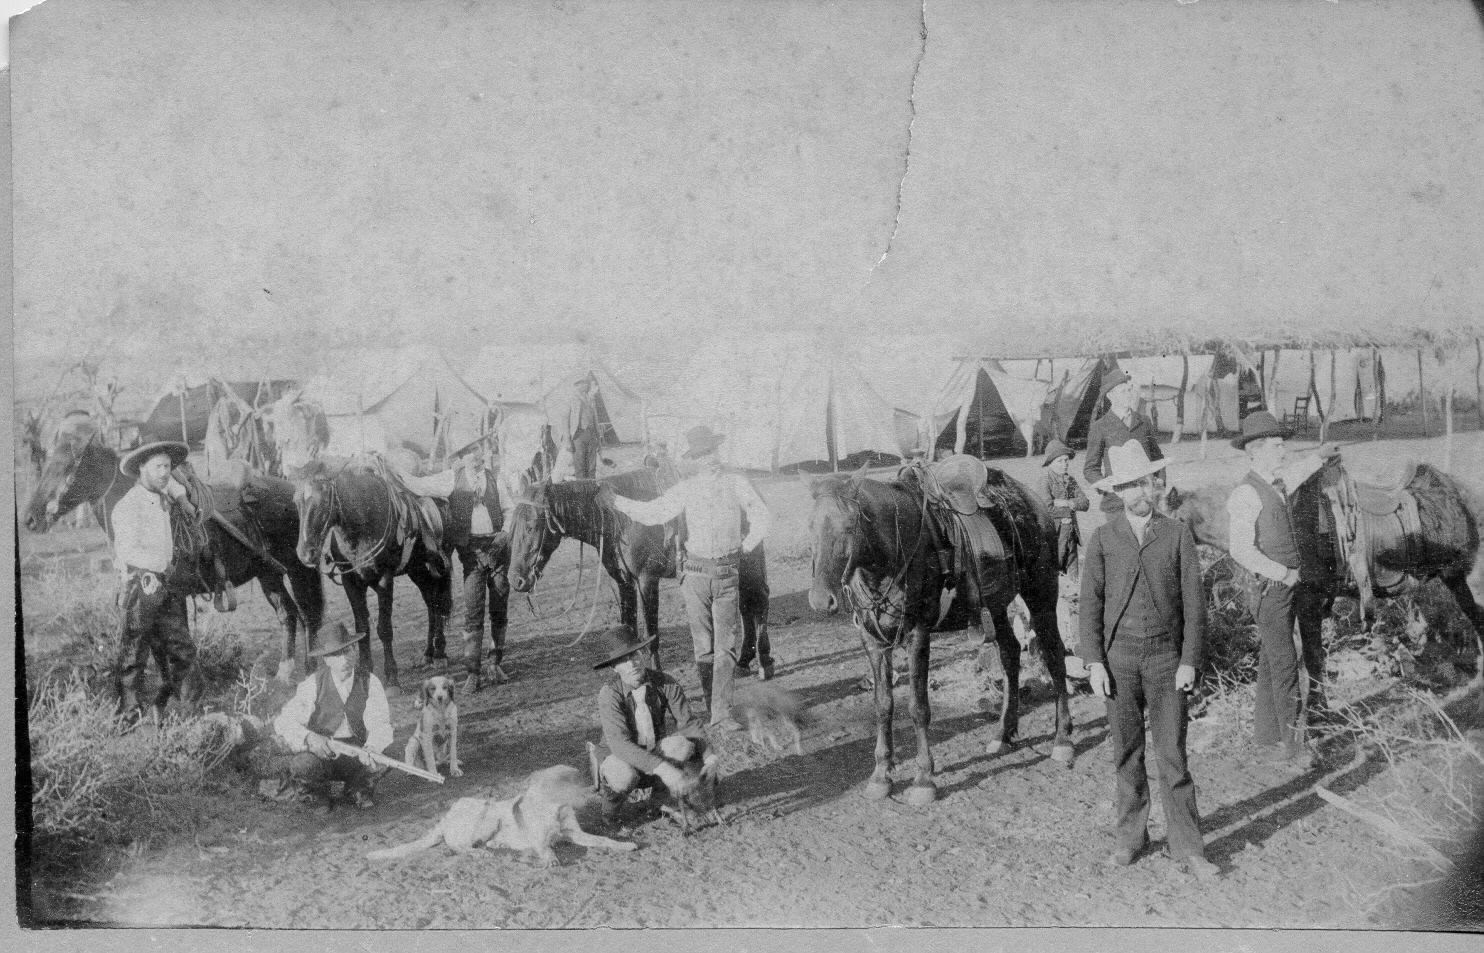 Texas Ranger Camp, 1870s. copyright 2018, Texas Ranger Hall of Fame and Museum